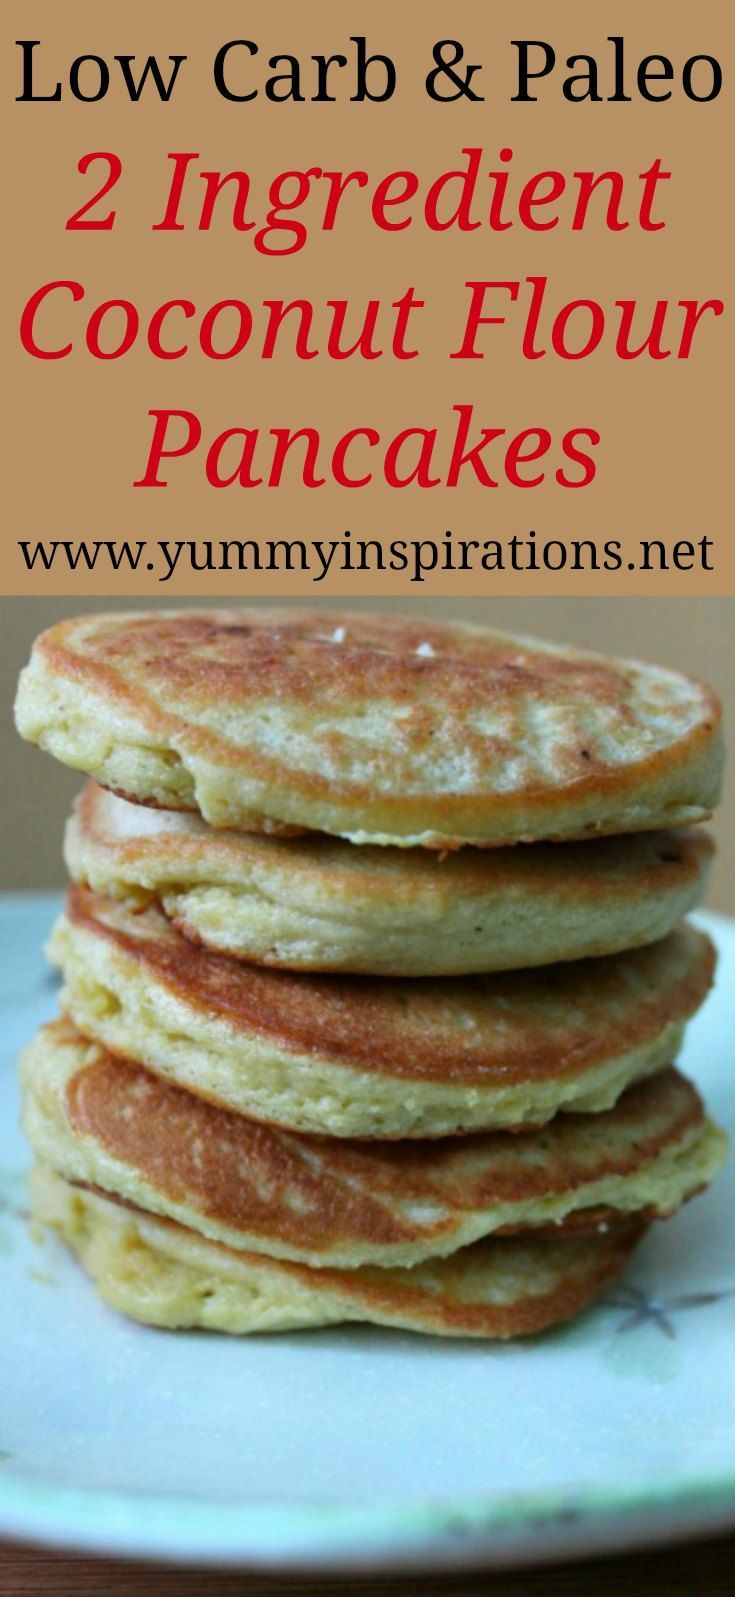 Photo of 2 Ingredient Coconut Flour Pancakes Recipe – low carb, keto and paleo friendly b…